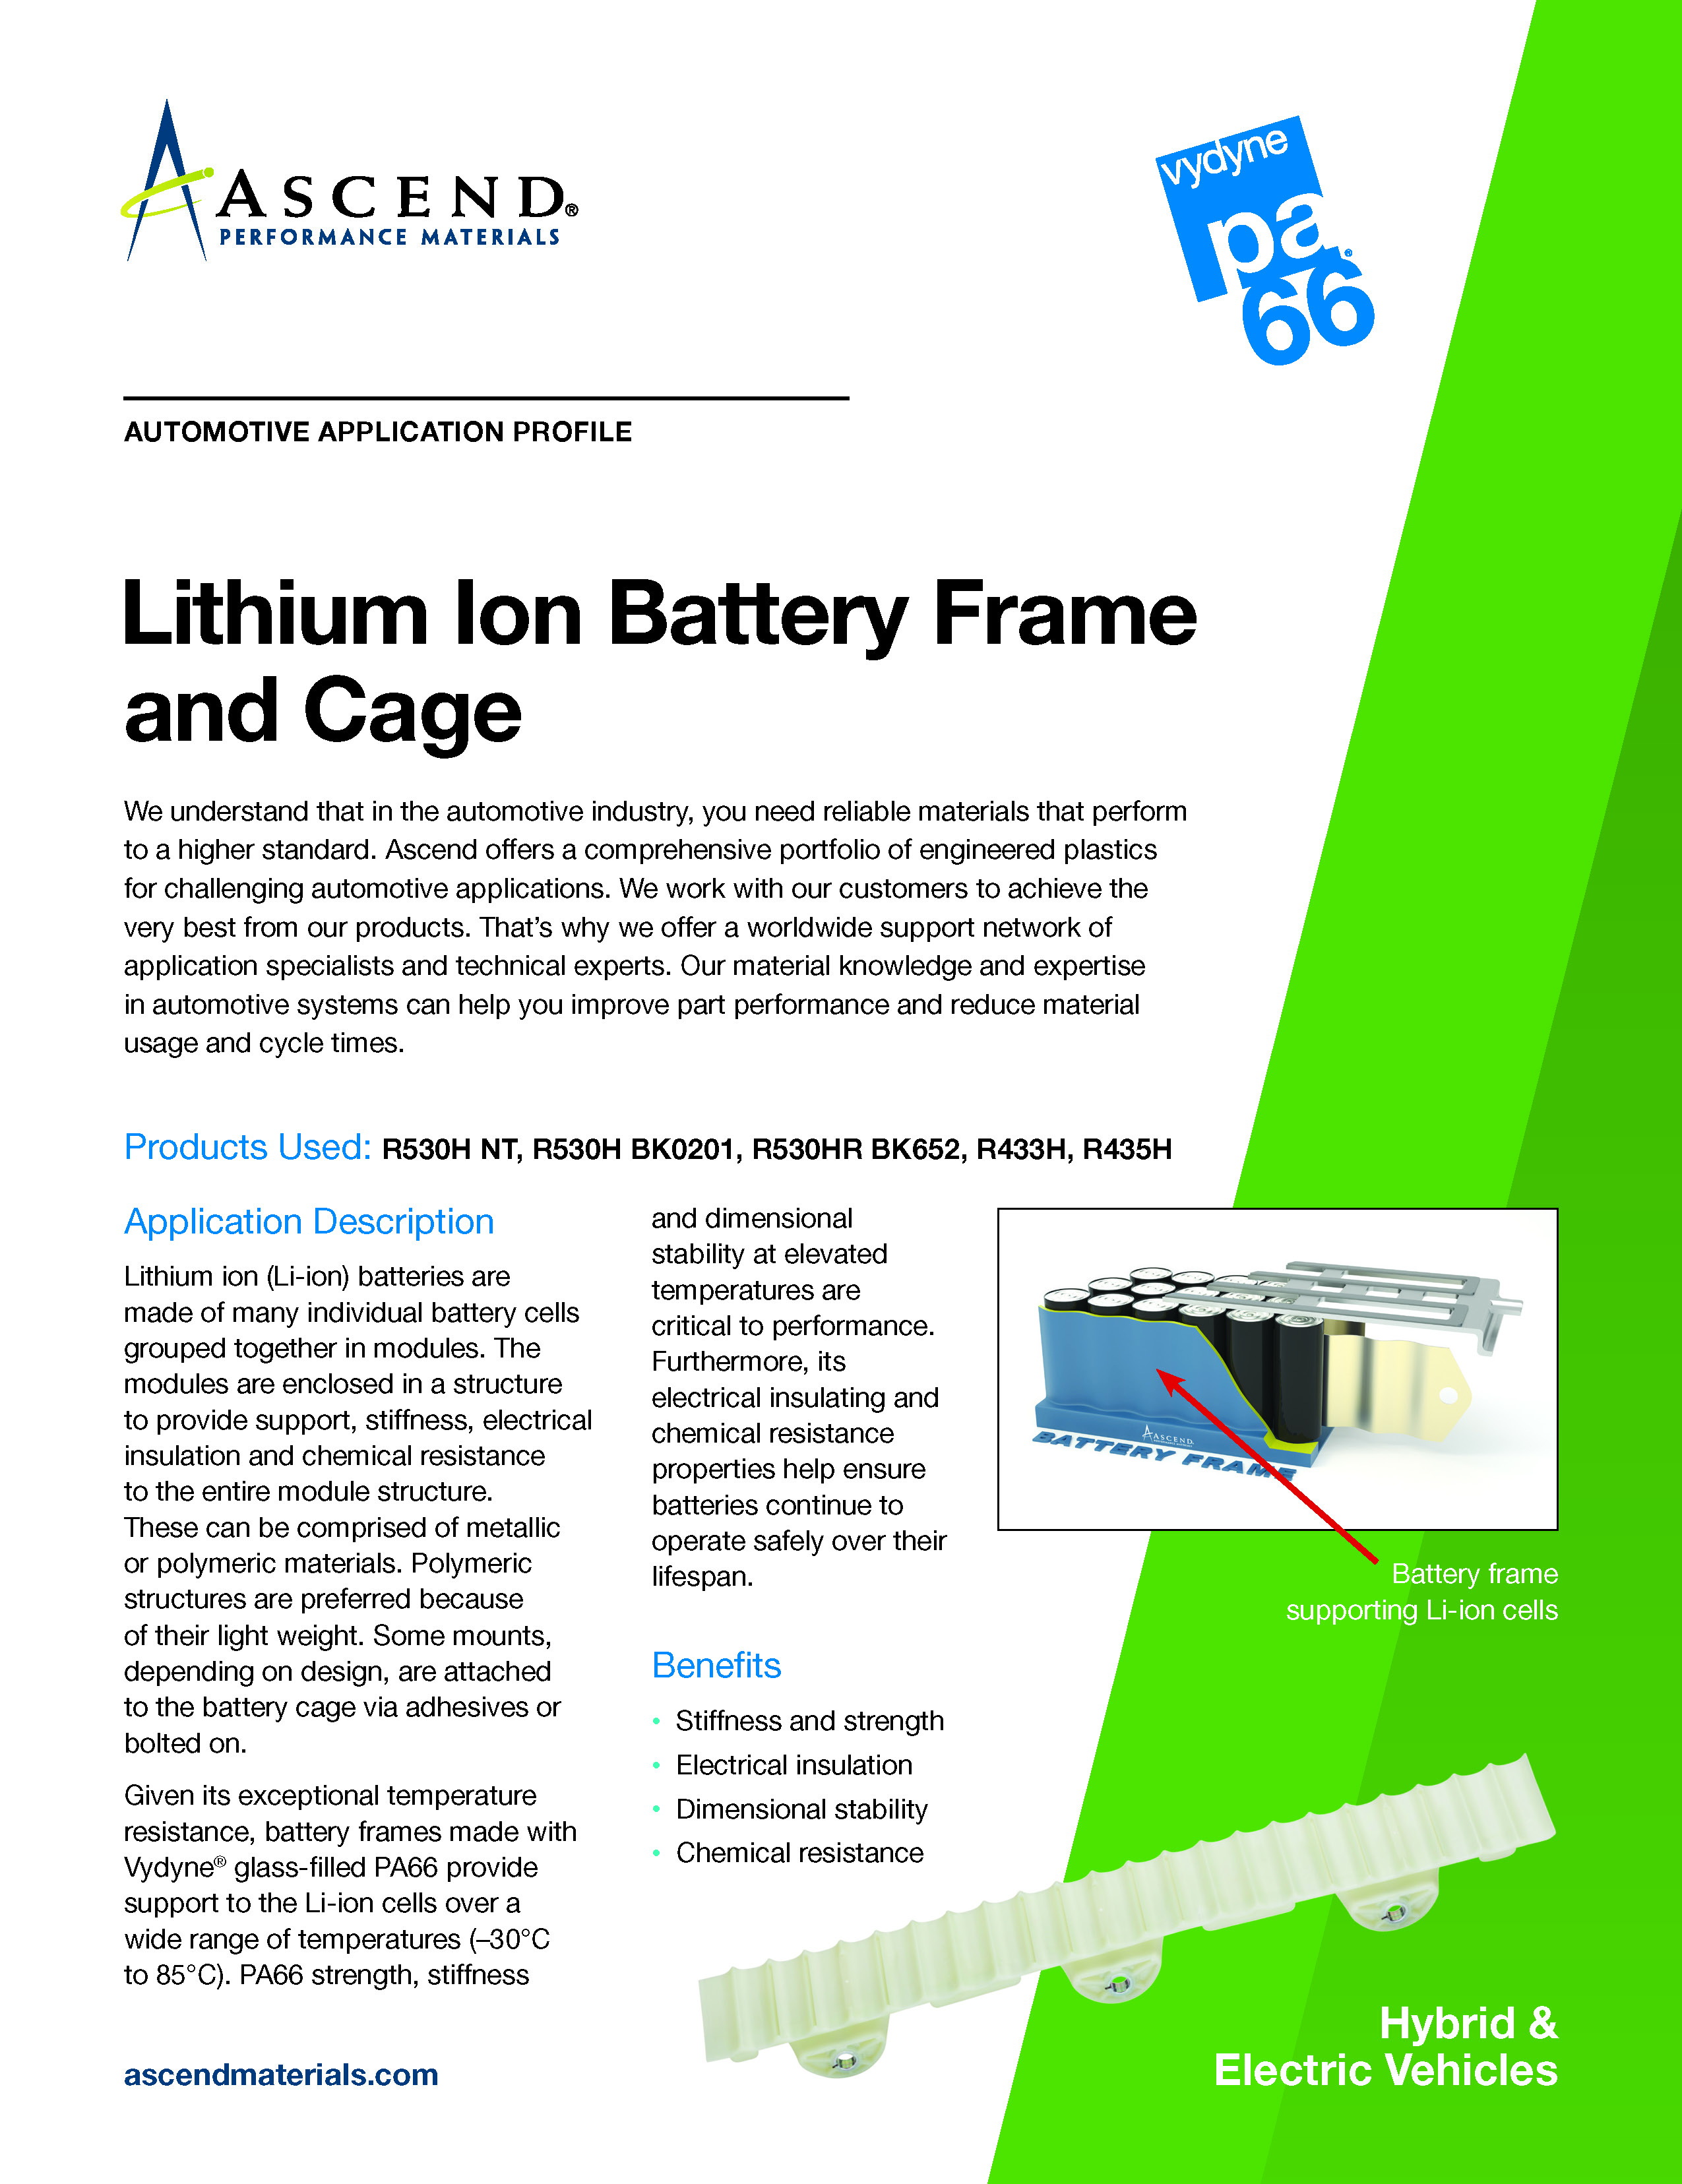 Auto EV application: Lithium Ion Battery Frame and Cage